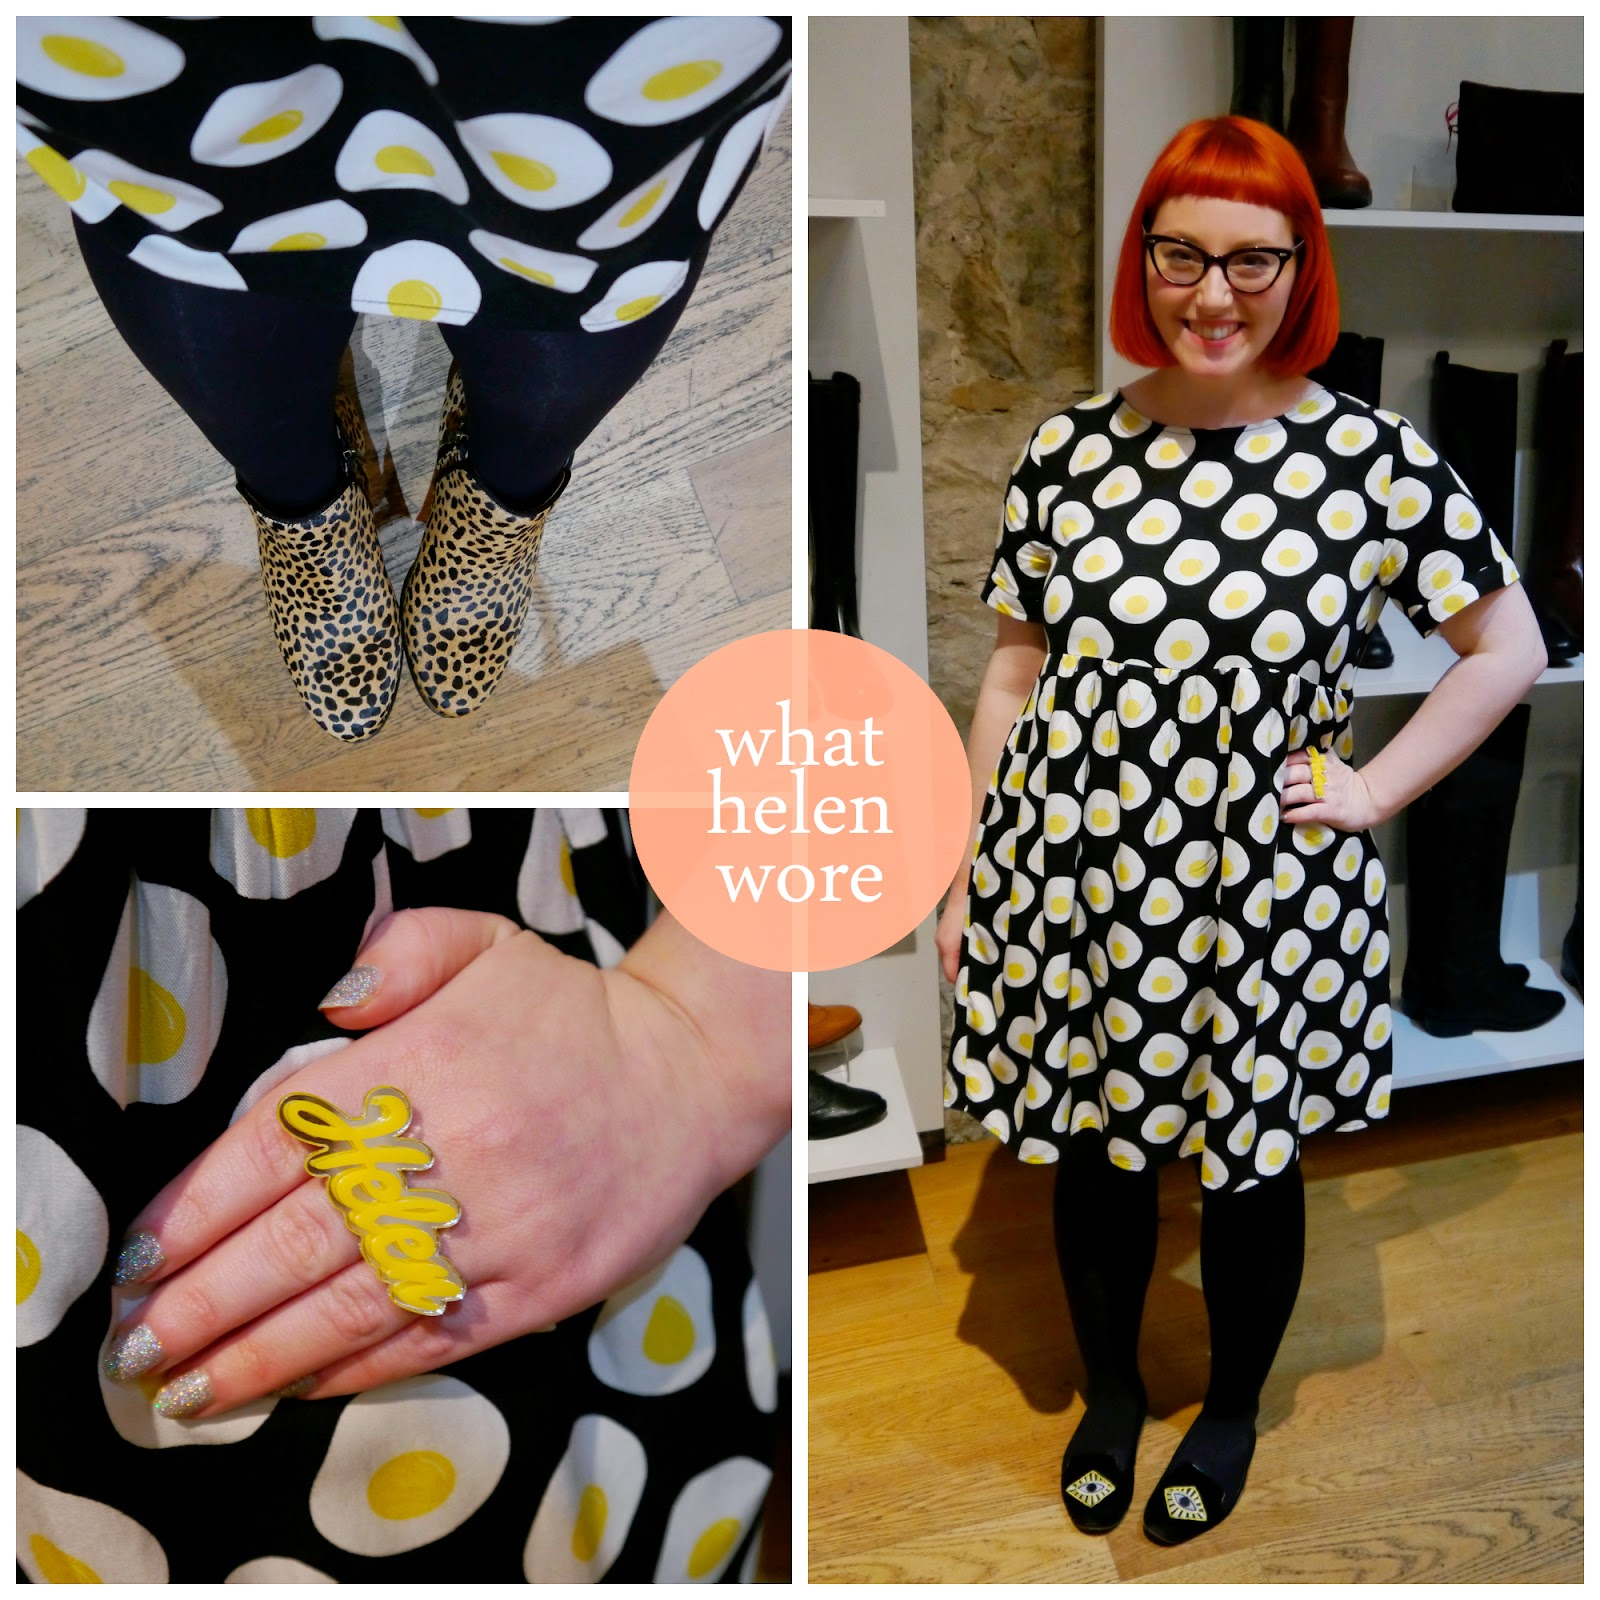 What Helen Wore, Edinburgh Bloggers, Scottish Fashion Blogger, The Whitepepper, Egg dress, egg print dress, Bonnie Bling, Bonnie Bling name ring, name ring, ankle boots, leopard print